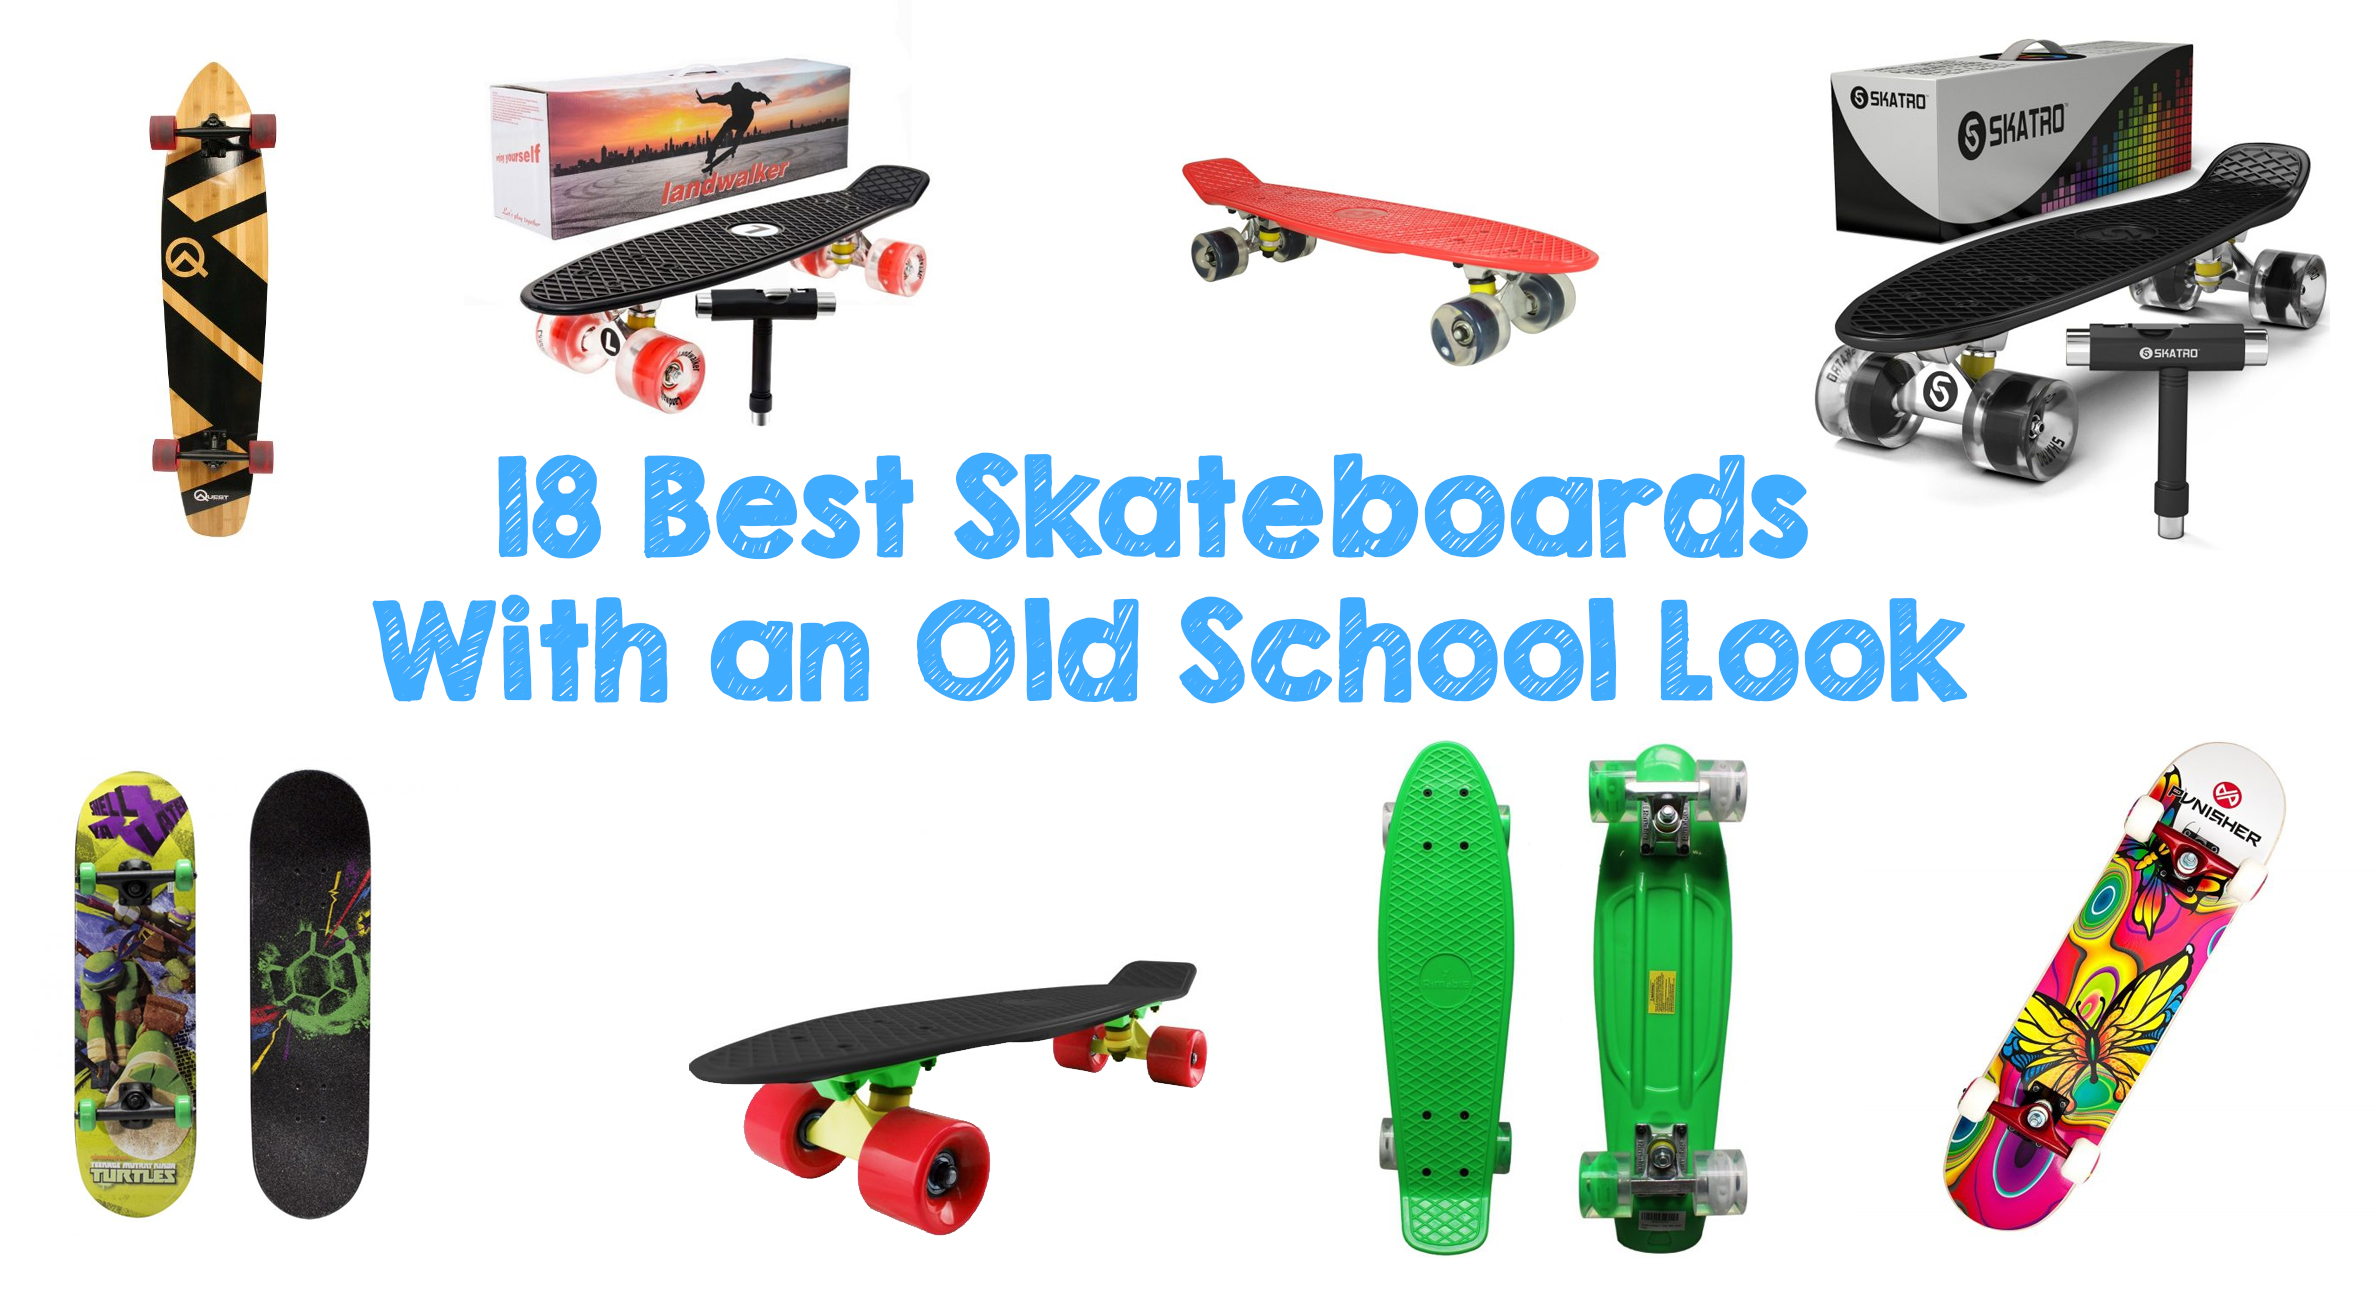 18 Best Skateboards With an Old School Look